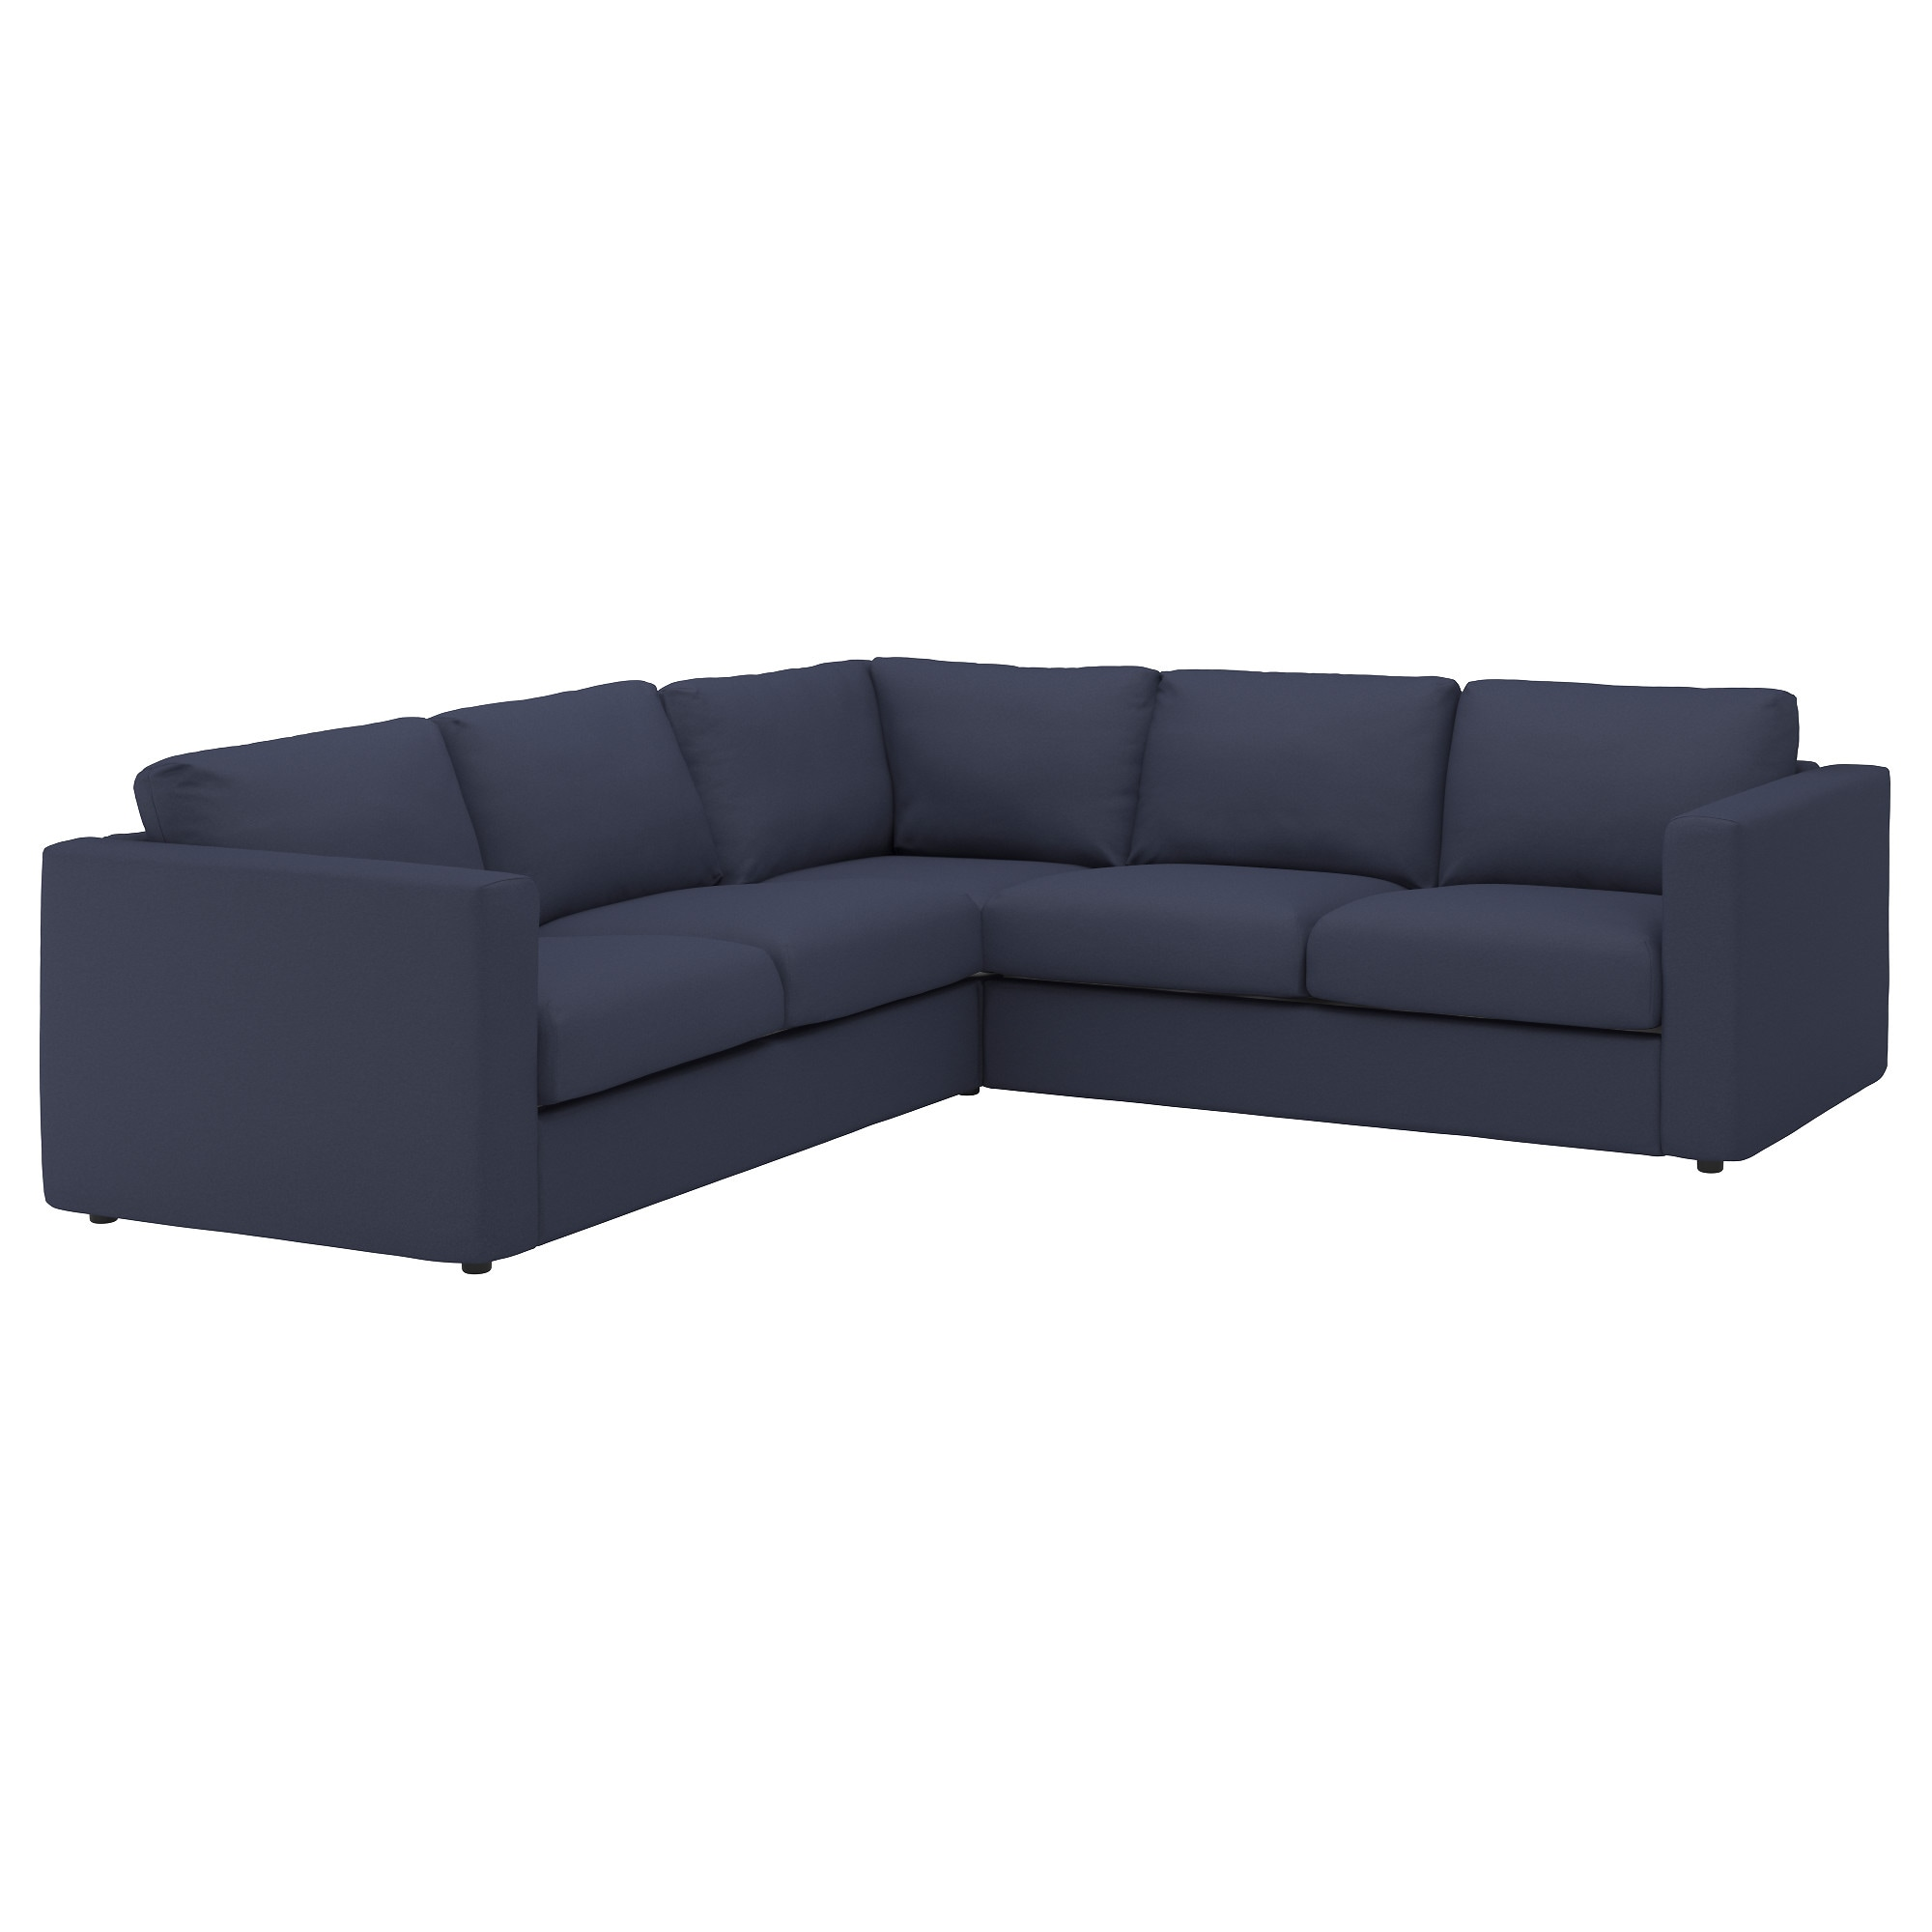 Vimle Sectional 4 Seat Corner Orrsta Black Blue Height Including Back Cushions